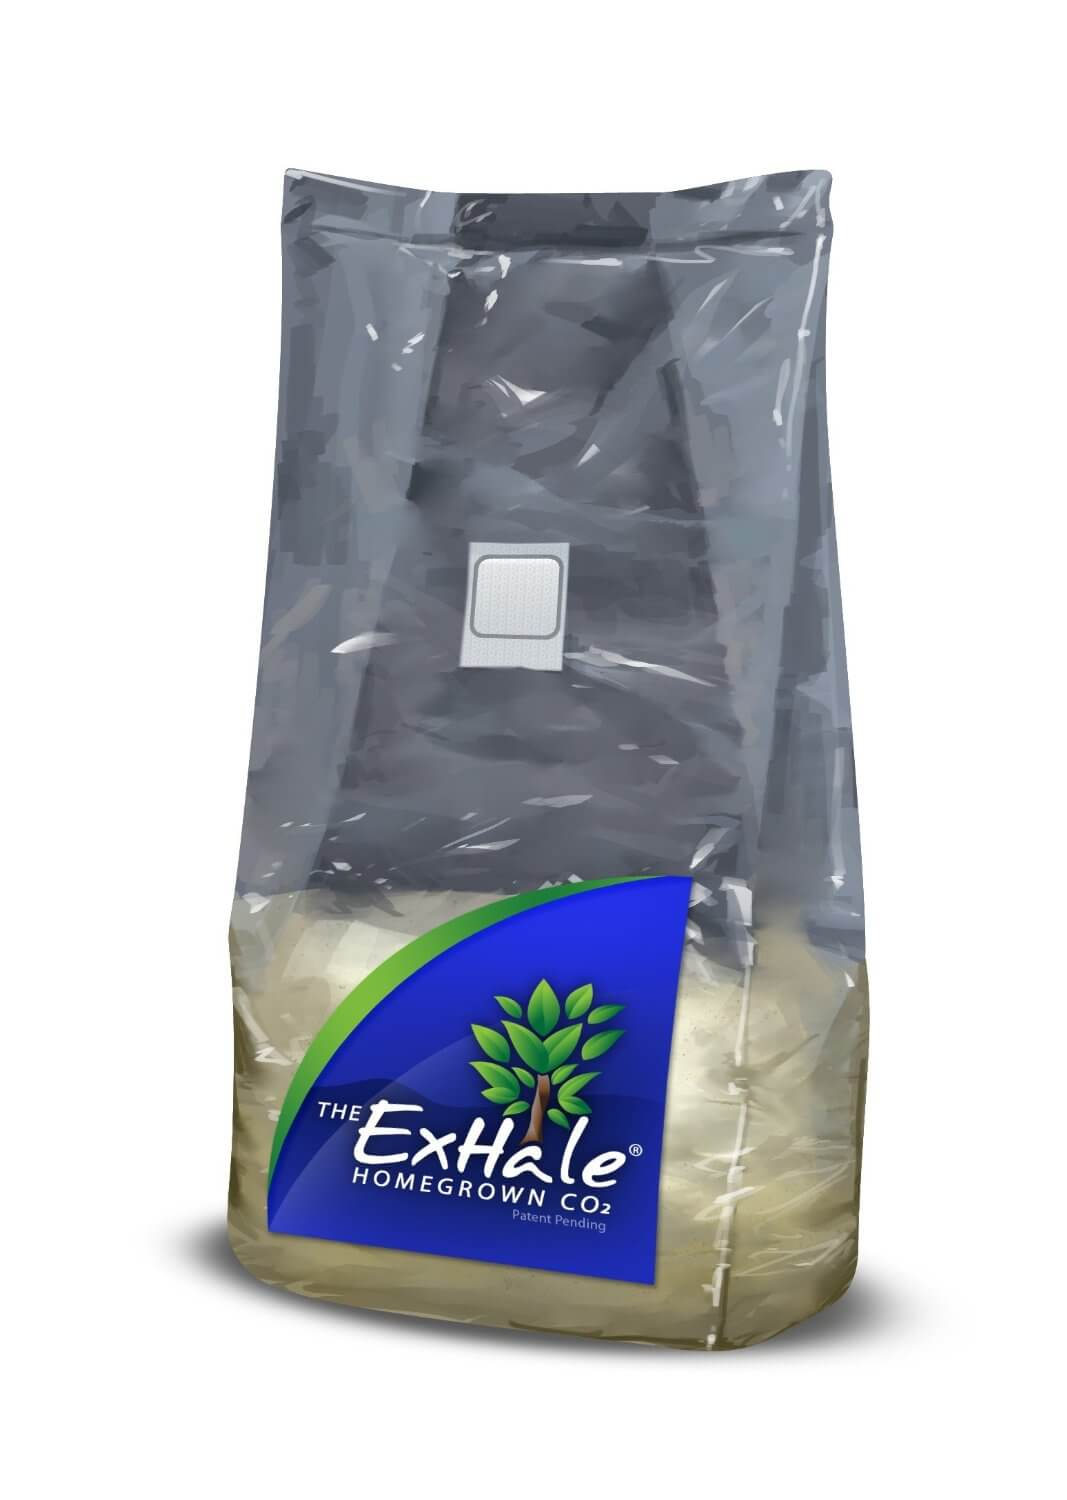 Holland Industry Exhale Homegrown C02 Bag (Small)